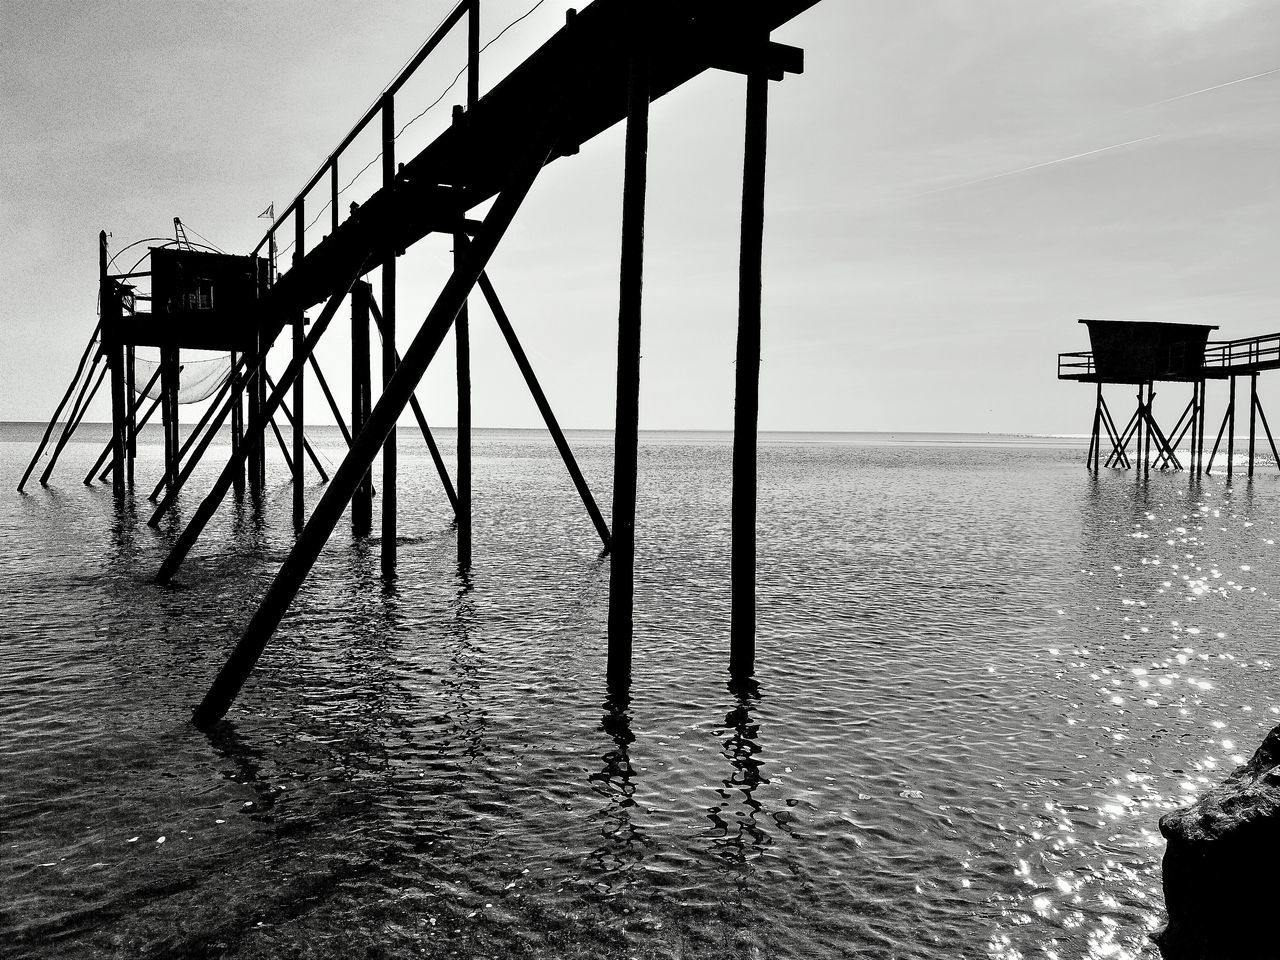 B&WPhoto B&W Collection Monochrome Collection Monochrome Photograhy B&w B&w Photo Blackandwhite Photography Seaside Sky And Water black and white Pêcherie Fisheries Building Fisheries La Bernerie En Retz Loire Atlantique France🇫🇷 Water HuaweiP9 HuaweiP9Photography Mer Structures & Lines No People Outdoors The Architect - 2017 EyeEm Awards